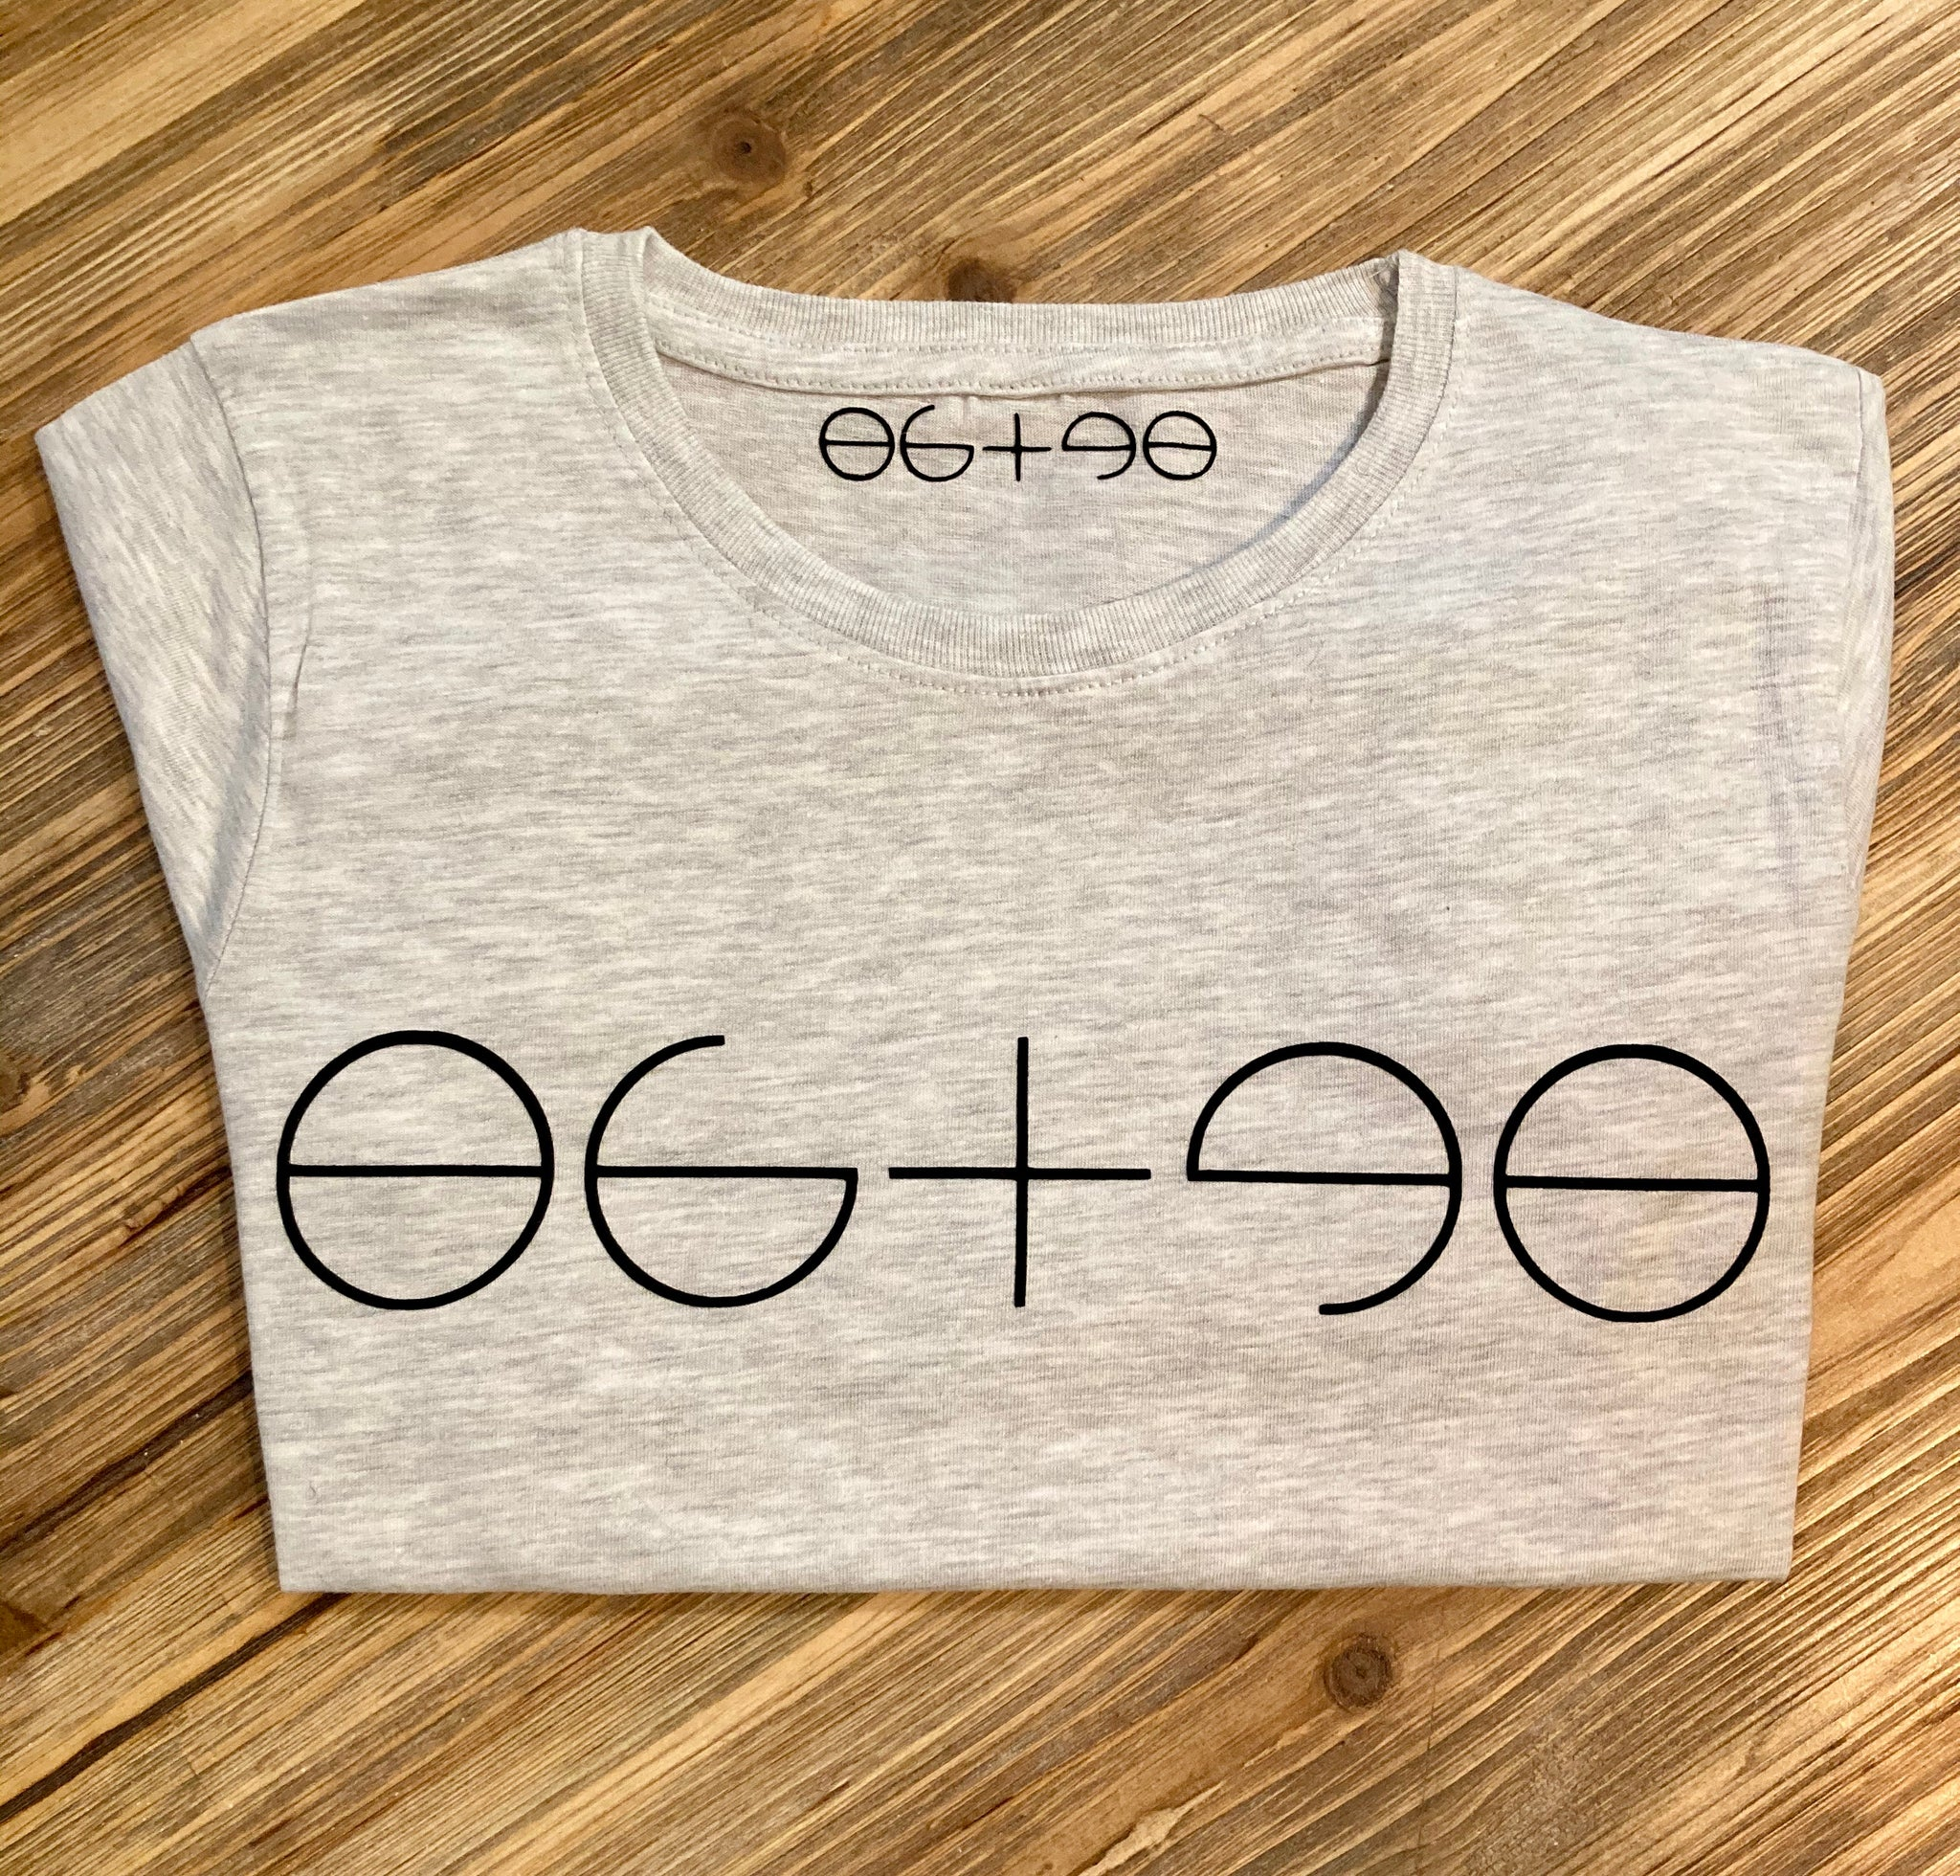 Camiseta - El 90 (Women's)